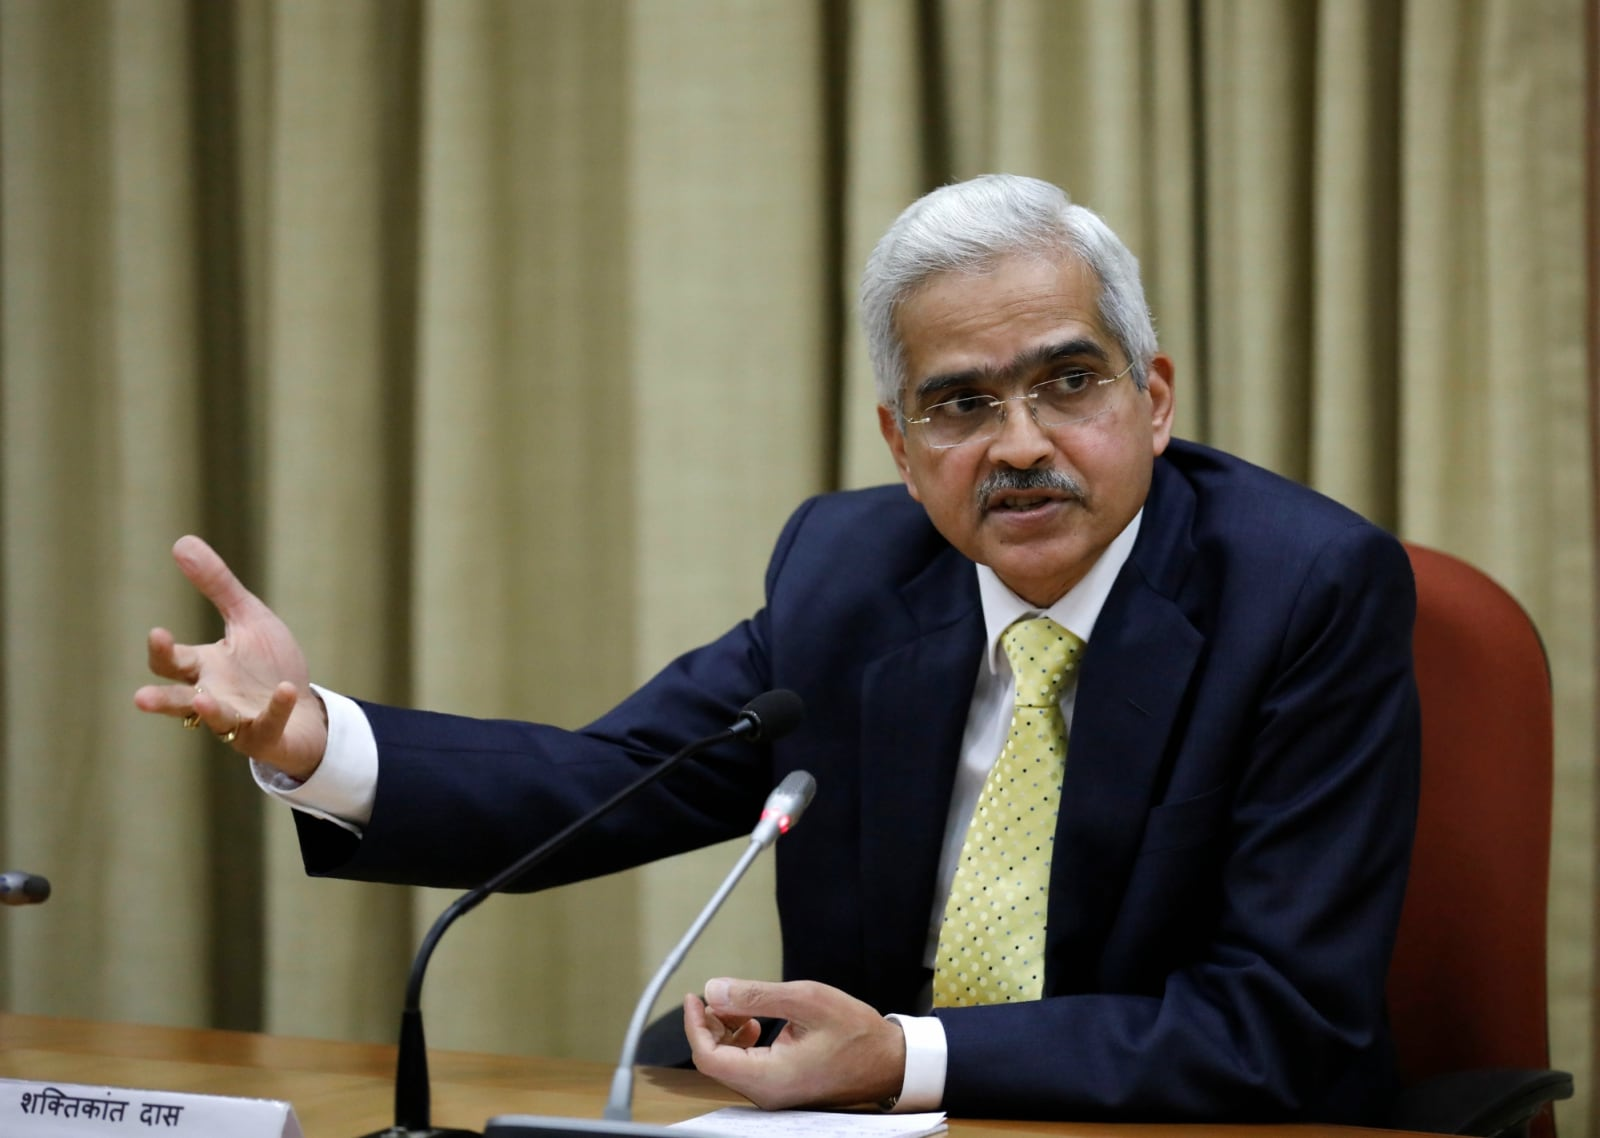 7. RBI Governor Shaktikanta Das On Financial Stability: Assuring the crisis-hit NBFC sector will be monitored, Reserve Bank of India Governor Shaktikanta Das on Monday said the central bank will not hesitate to take any required measure to maintain the financial stability of the economy. In a lecture at the Lal Bahadur Shastri National Academy of Administration, Mussoorie, on the